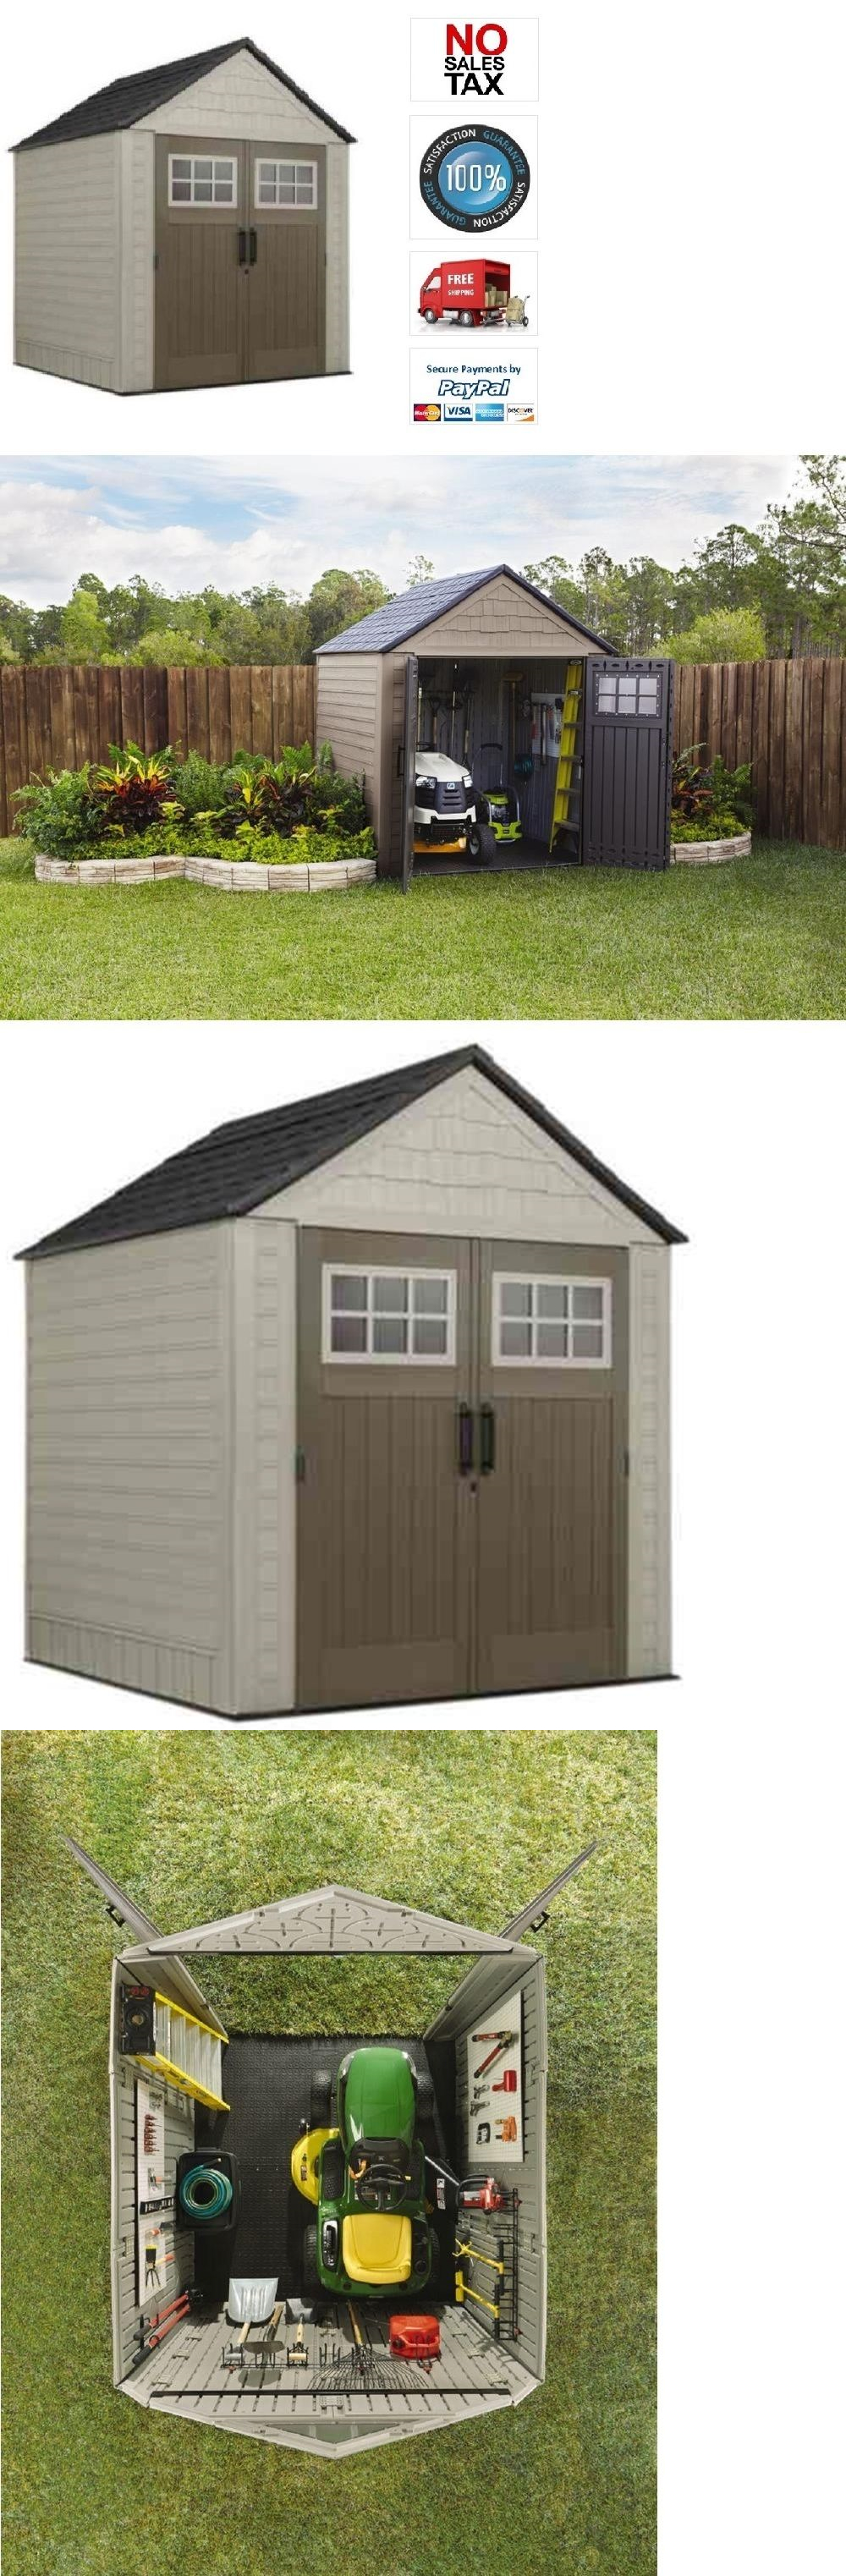 Garden And Storage Sheds 139956: Rubbermaid 7X7 Heavy Duty Lawn Utility  Storage, Riding Mowers